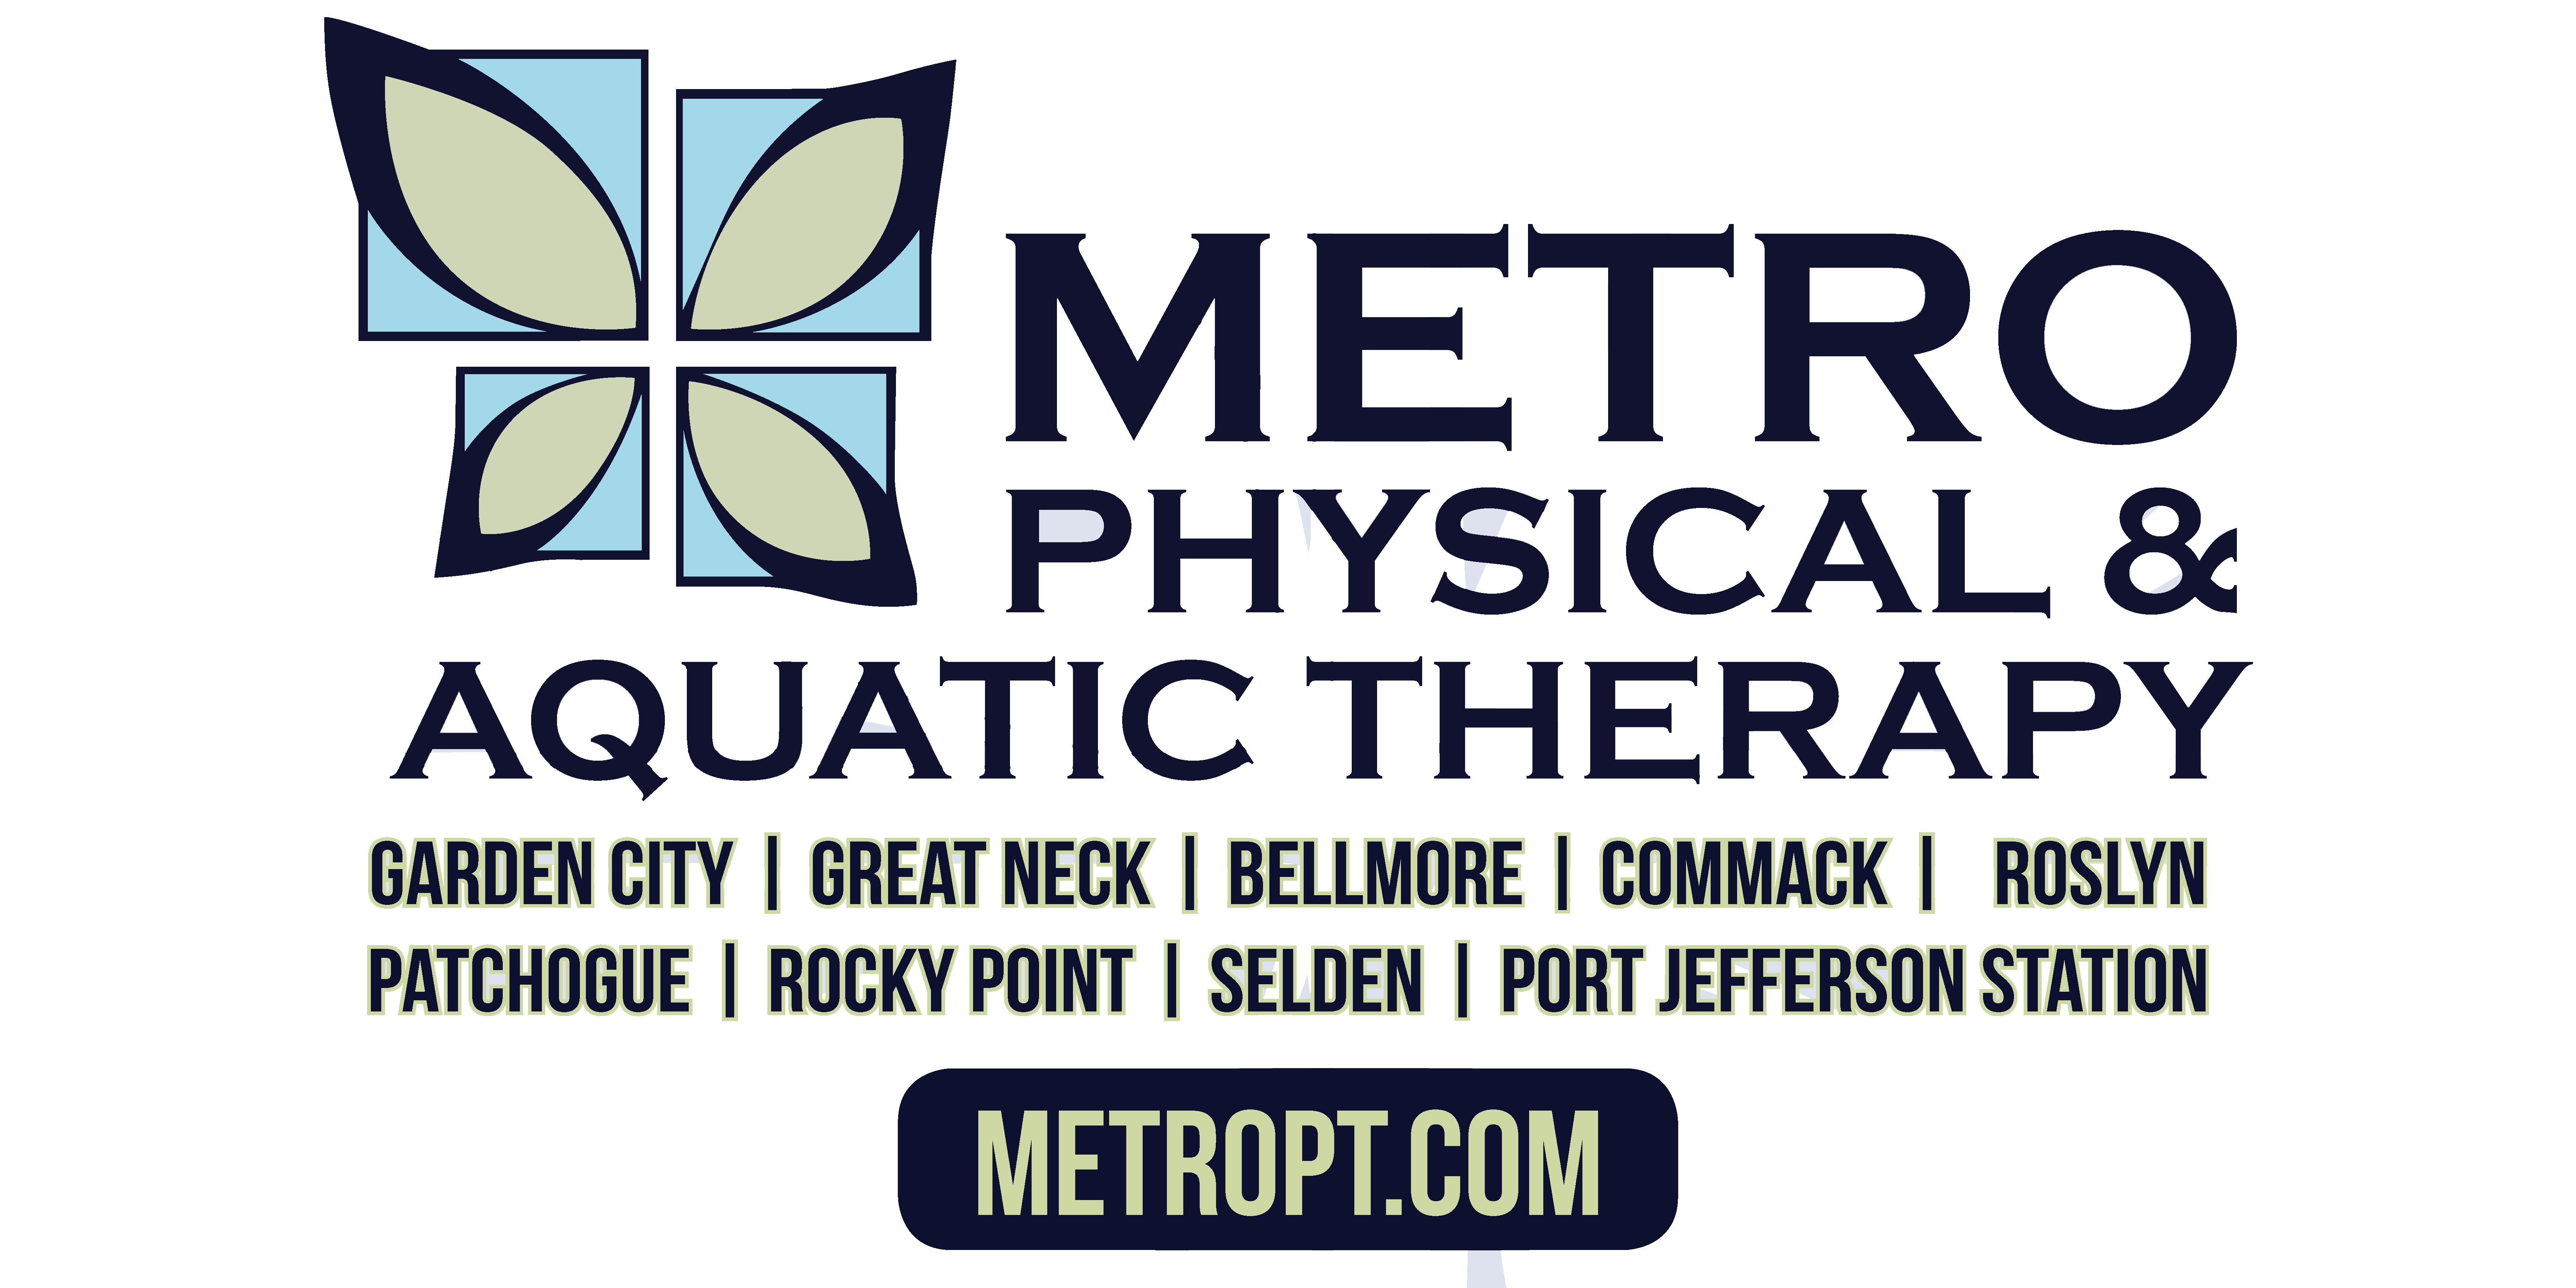 Metro Physical & Aquatic Therapy- Selden